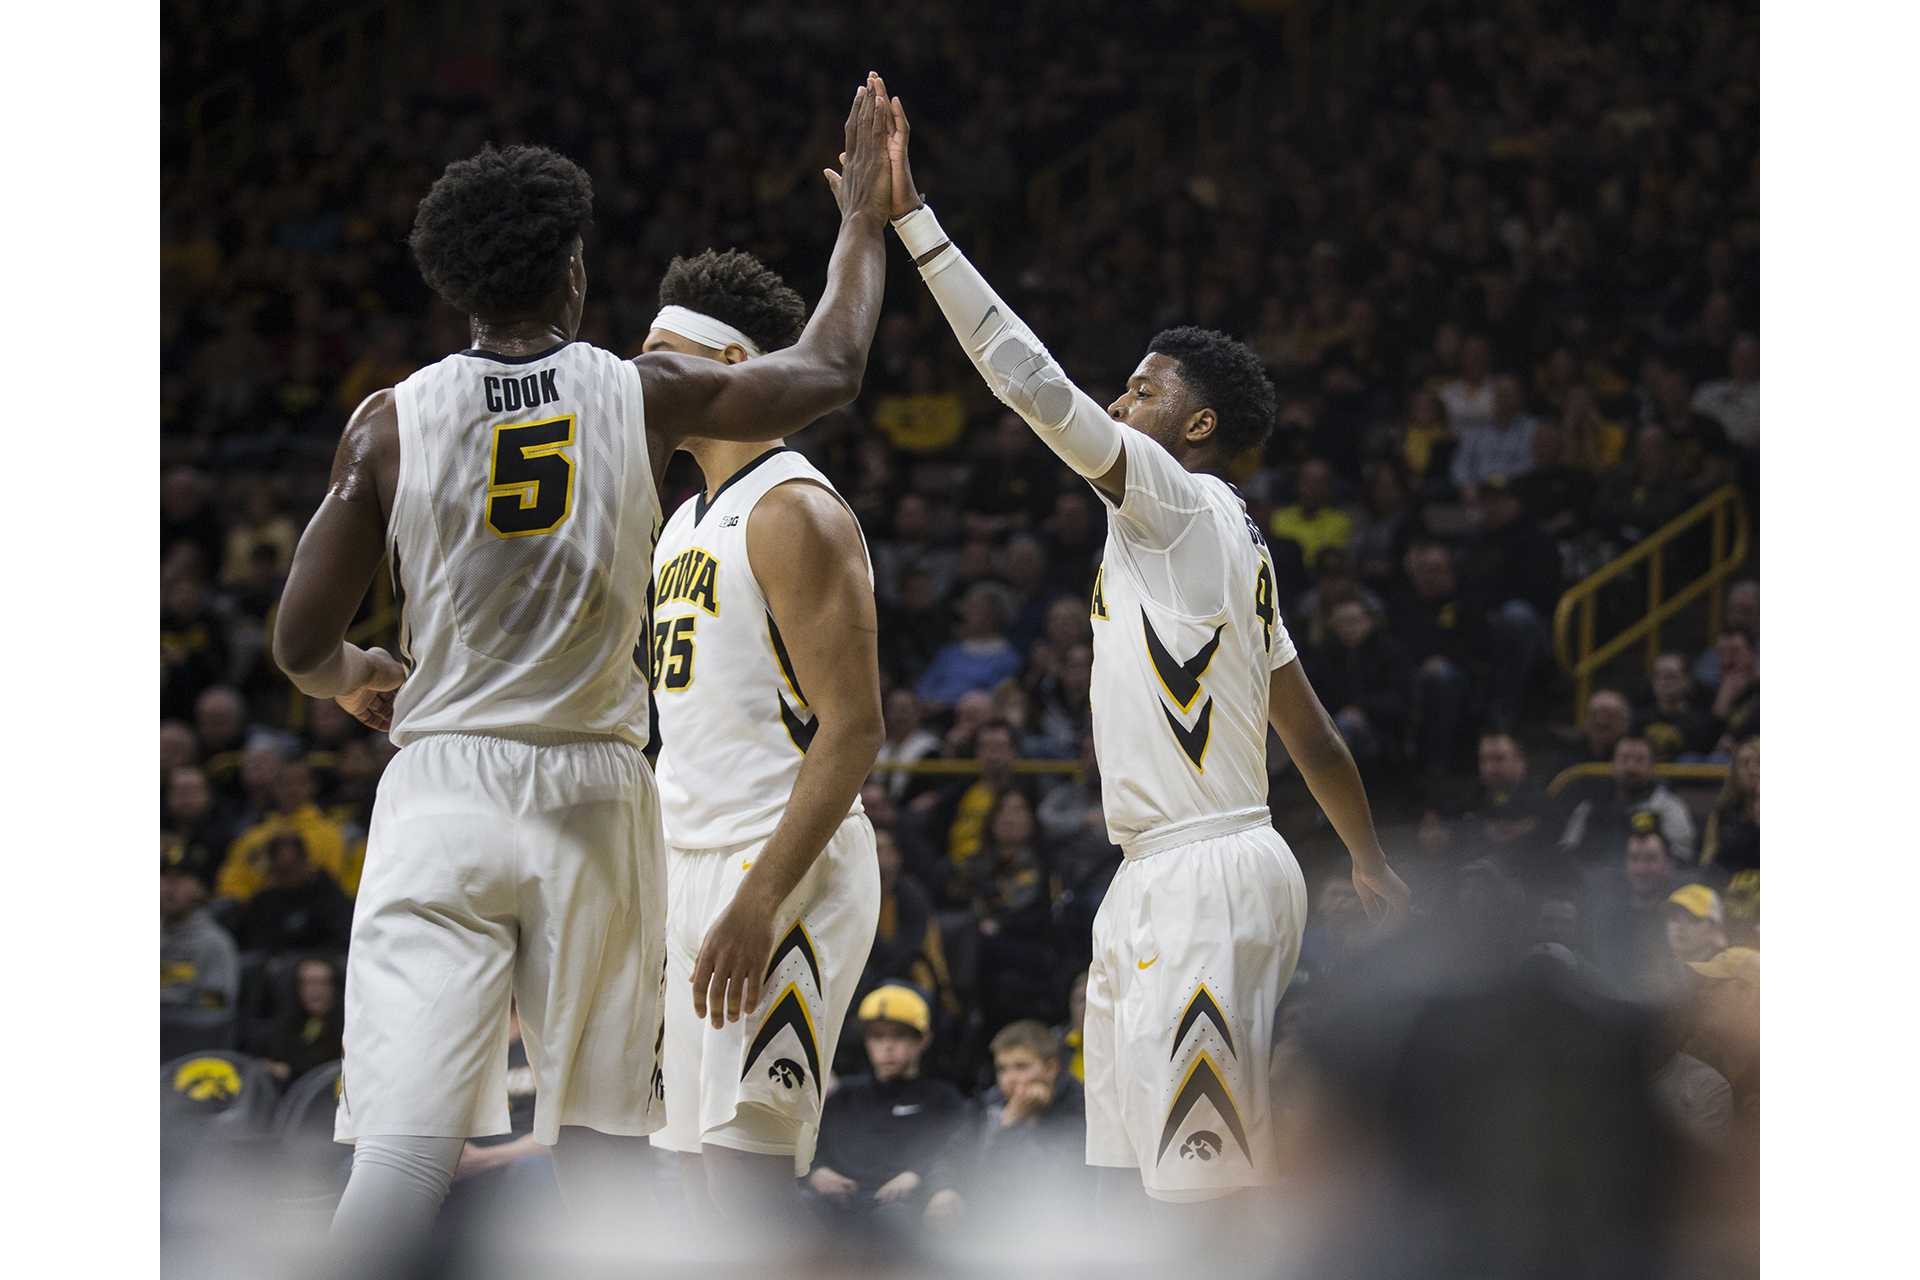 Iowa's Isaiah Moss (right) and Tyler Cook (left) high five during the Senior Day men's basketball game between Iowa and Northwestern at Carver-Hawkeye Arena on Sunday, Feb. 25, 2018. The Hawkeyes defeated the Wildcats 77-70. (Ben Allan Smith/The Daily Iowan)